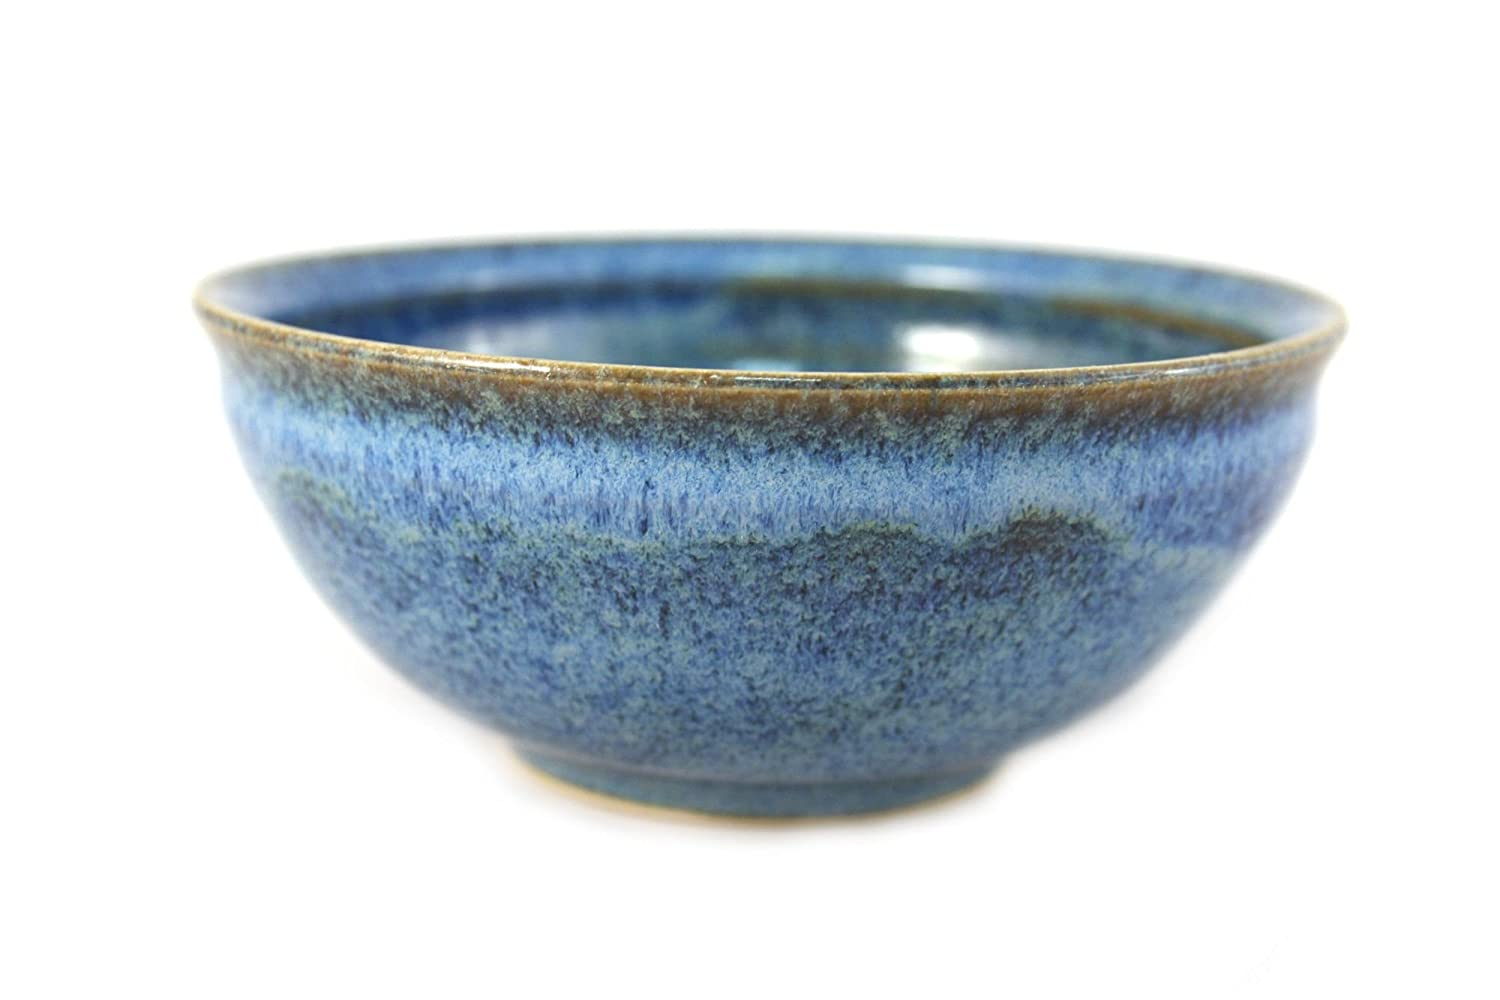 korium Shaving bowl Blue Ocean - handmade ceramics by korium